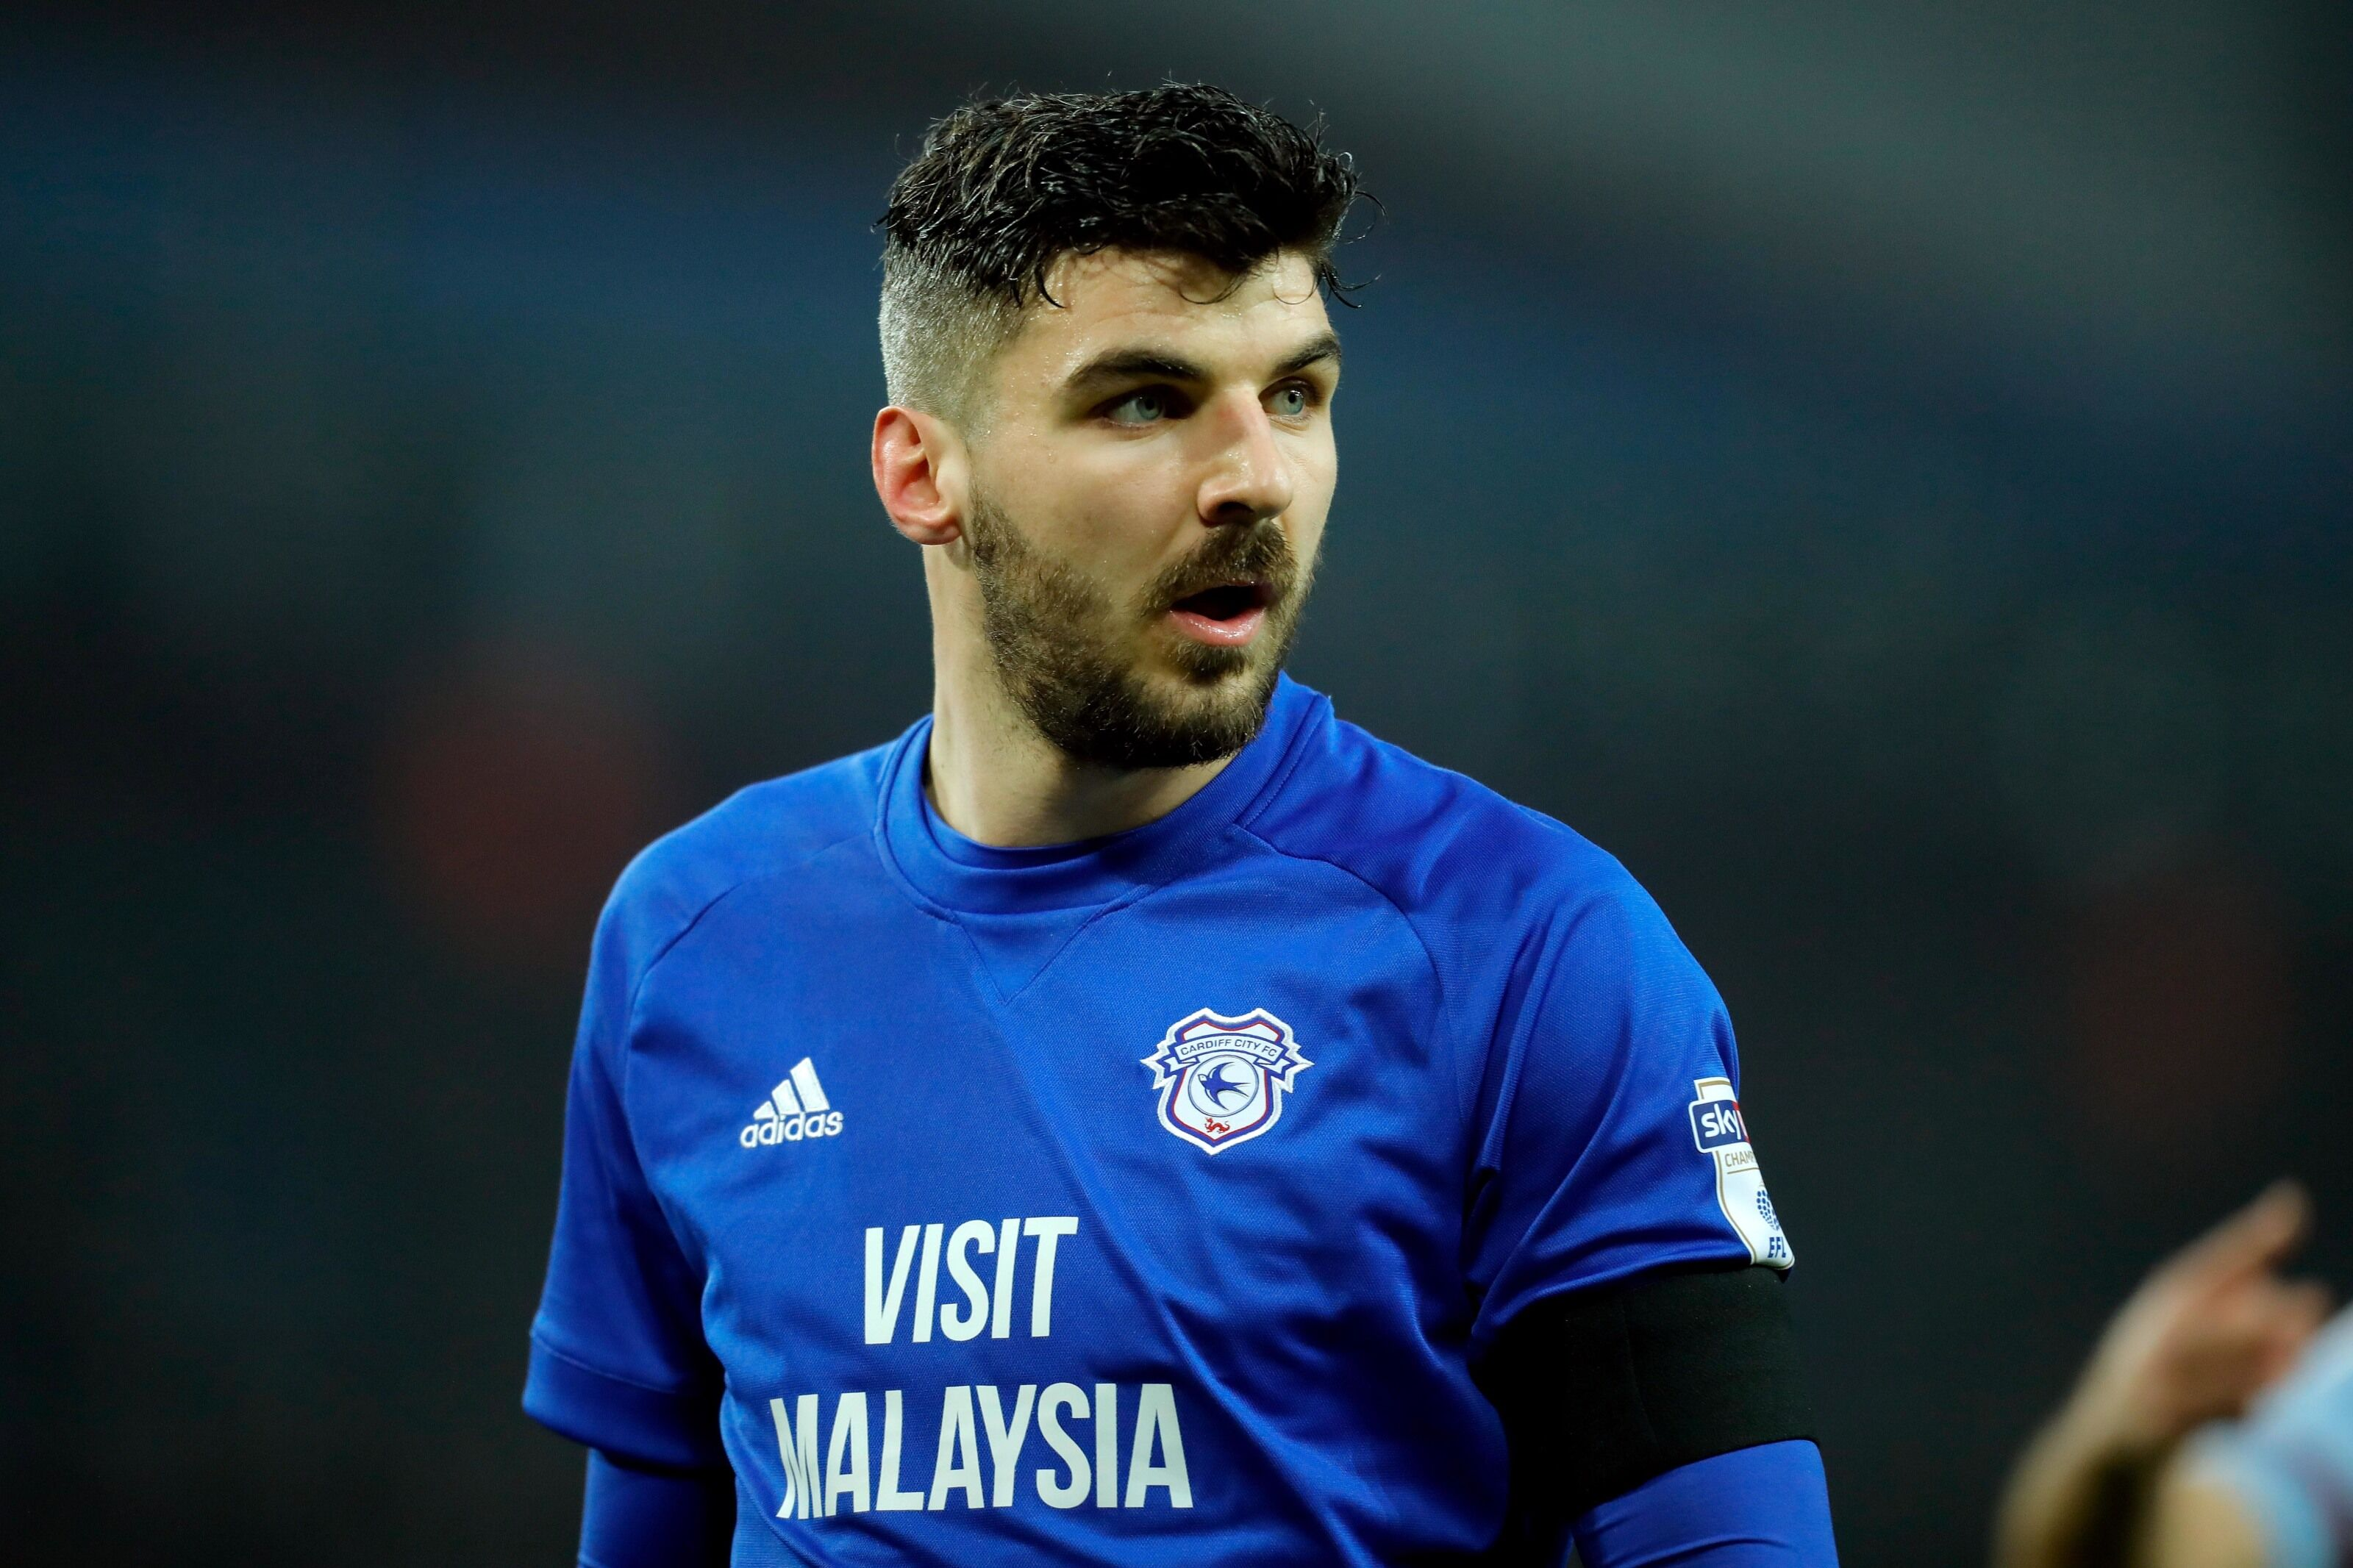 BIRMINGHAM, ENGLAND - APRIL 10: Callum Paterson of Cardiff City during the Sky Bet Championship match between Aston Villa and Cardiff City at Villa Park on April 10, 2018 in Birmingham, England. (Photo by Malcolm Couzens/Getty Images)